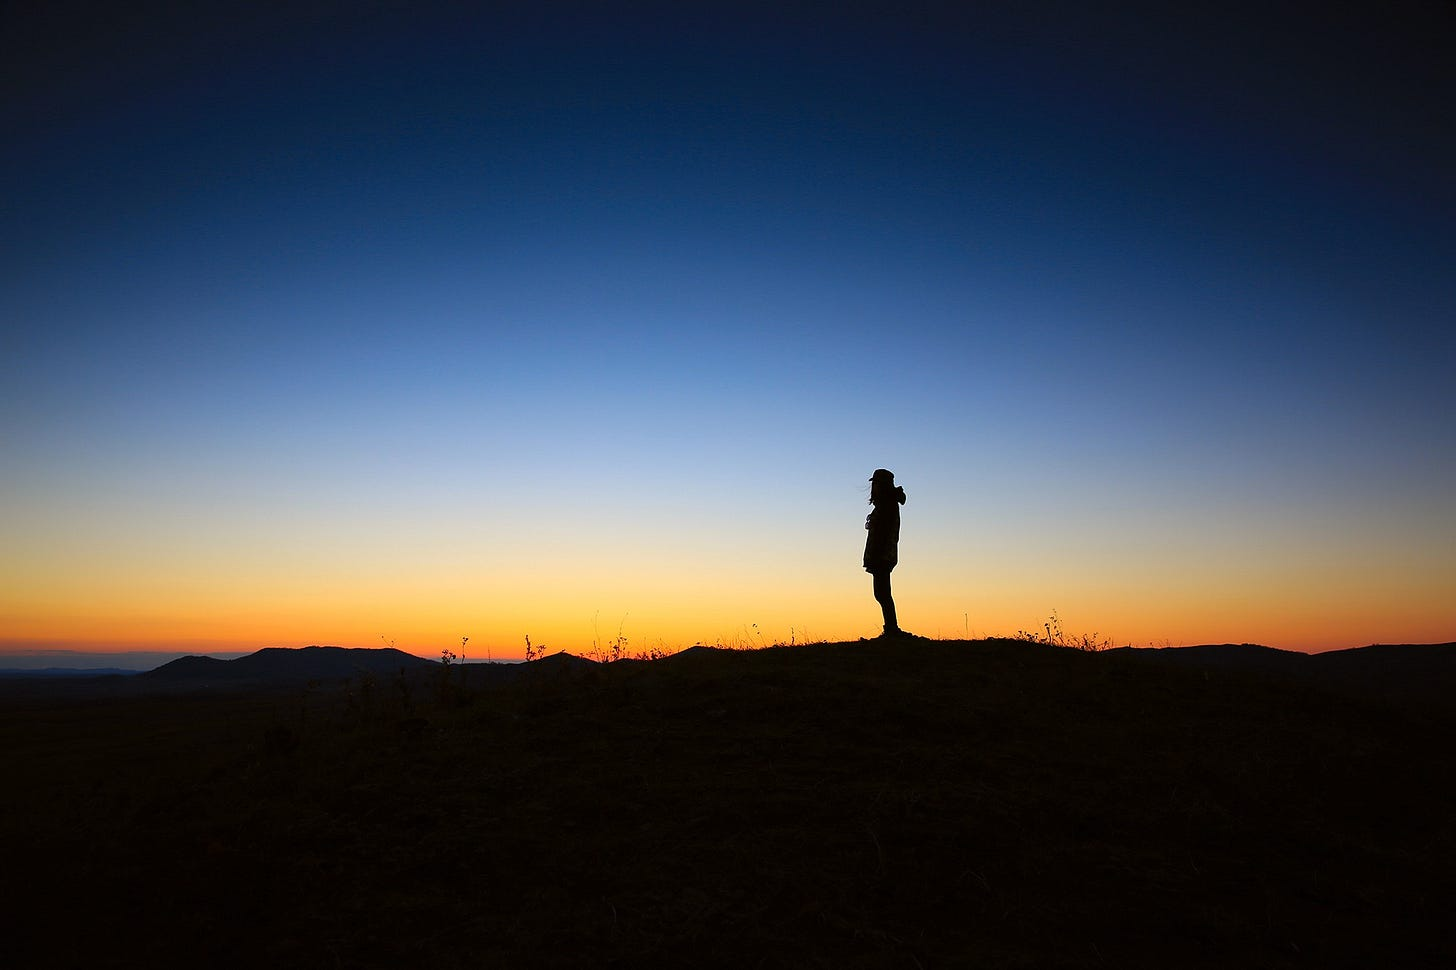 """Image of a silhouette of a person standing on a hill at dusk for article titled """"the illusion of free will"""""""